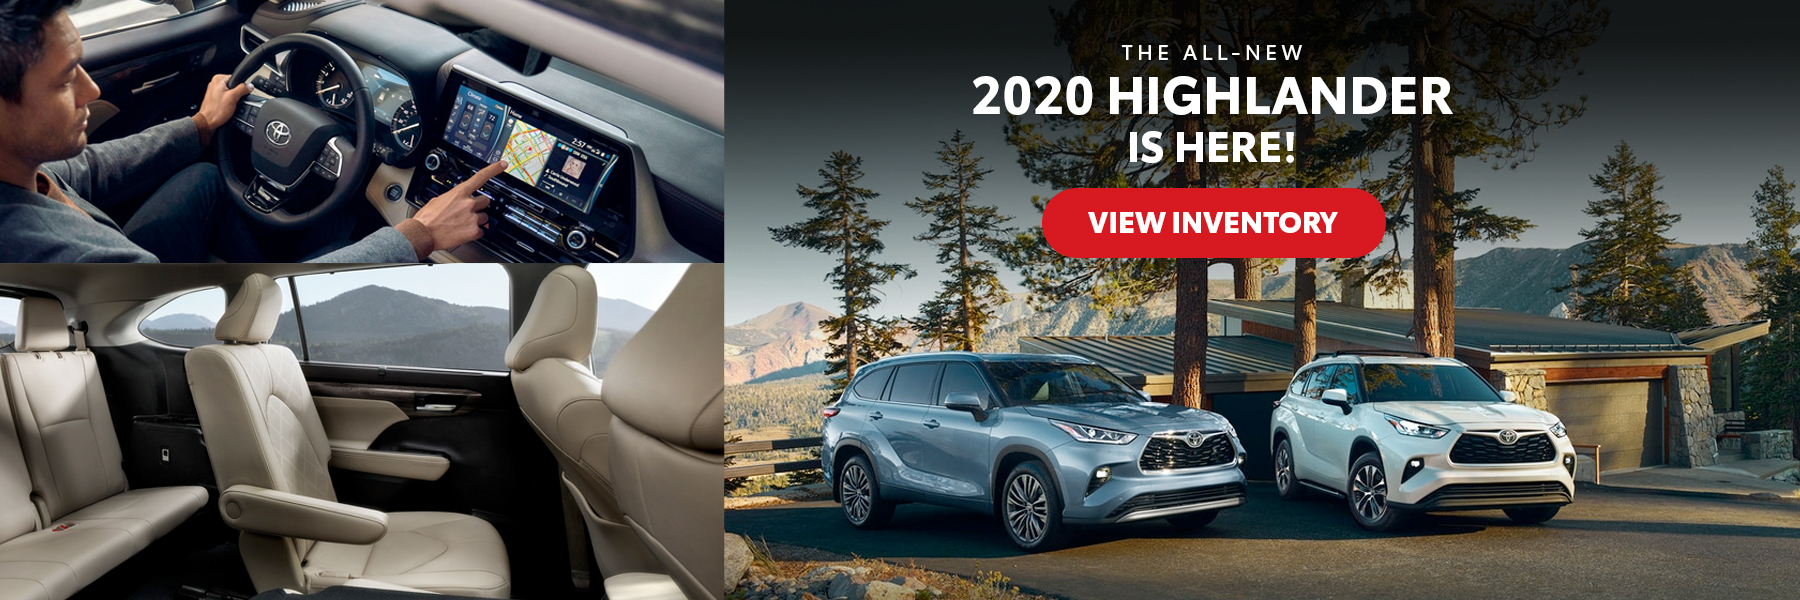 The All-New 2020 Highlander